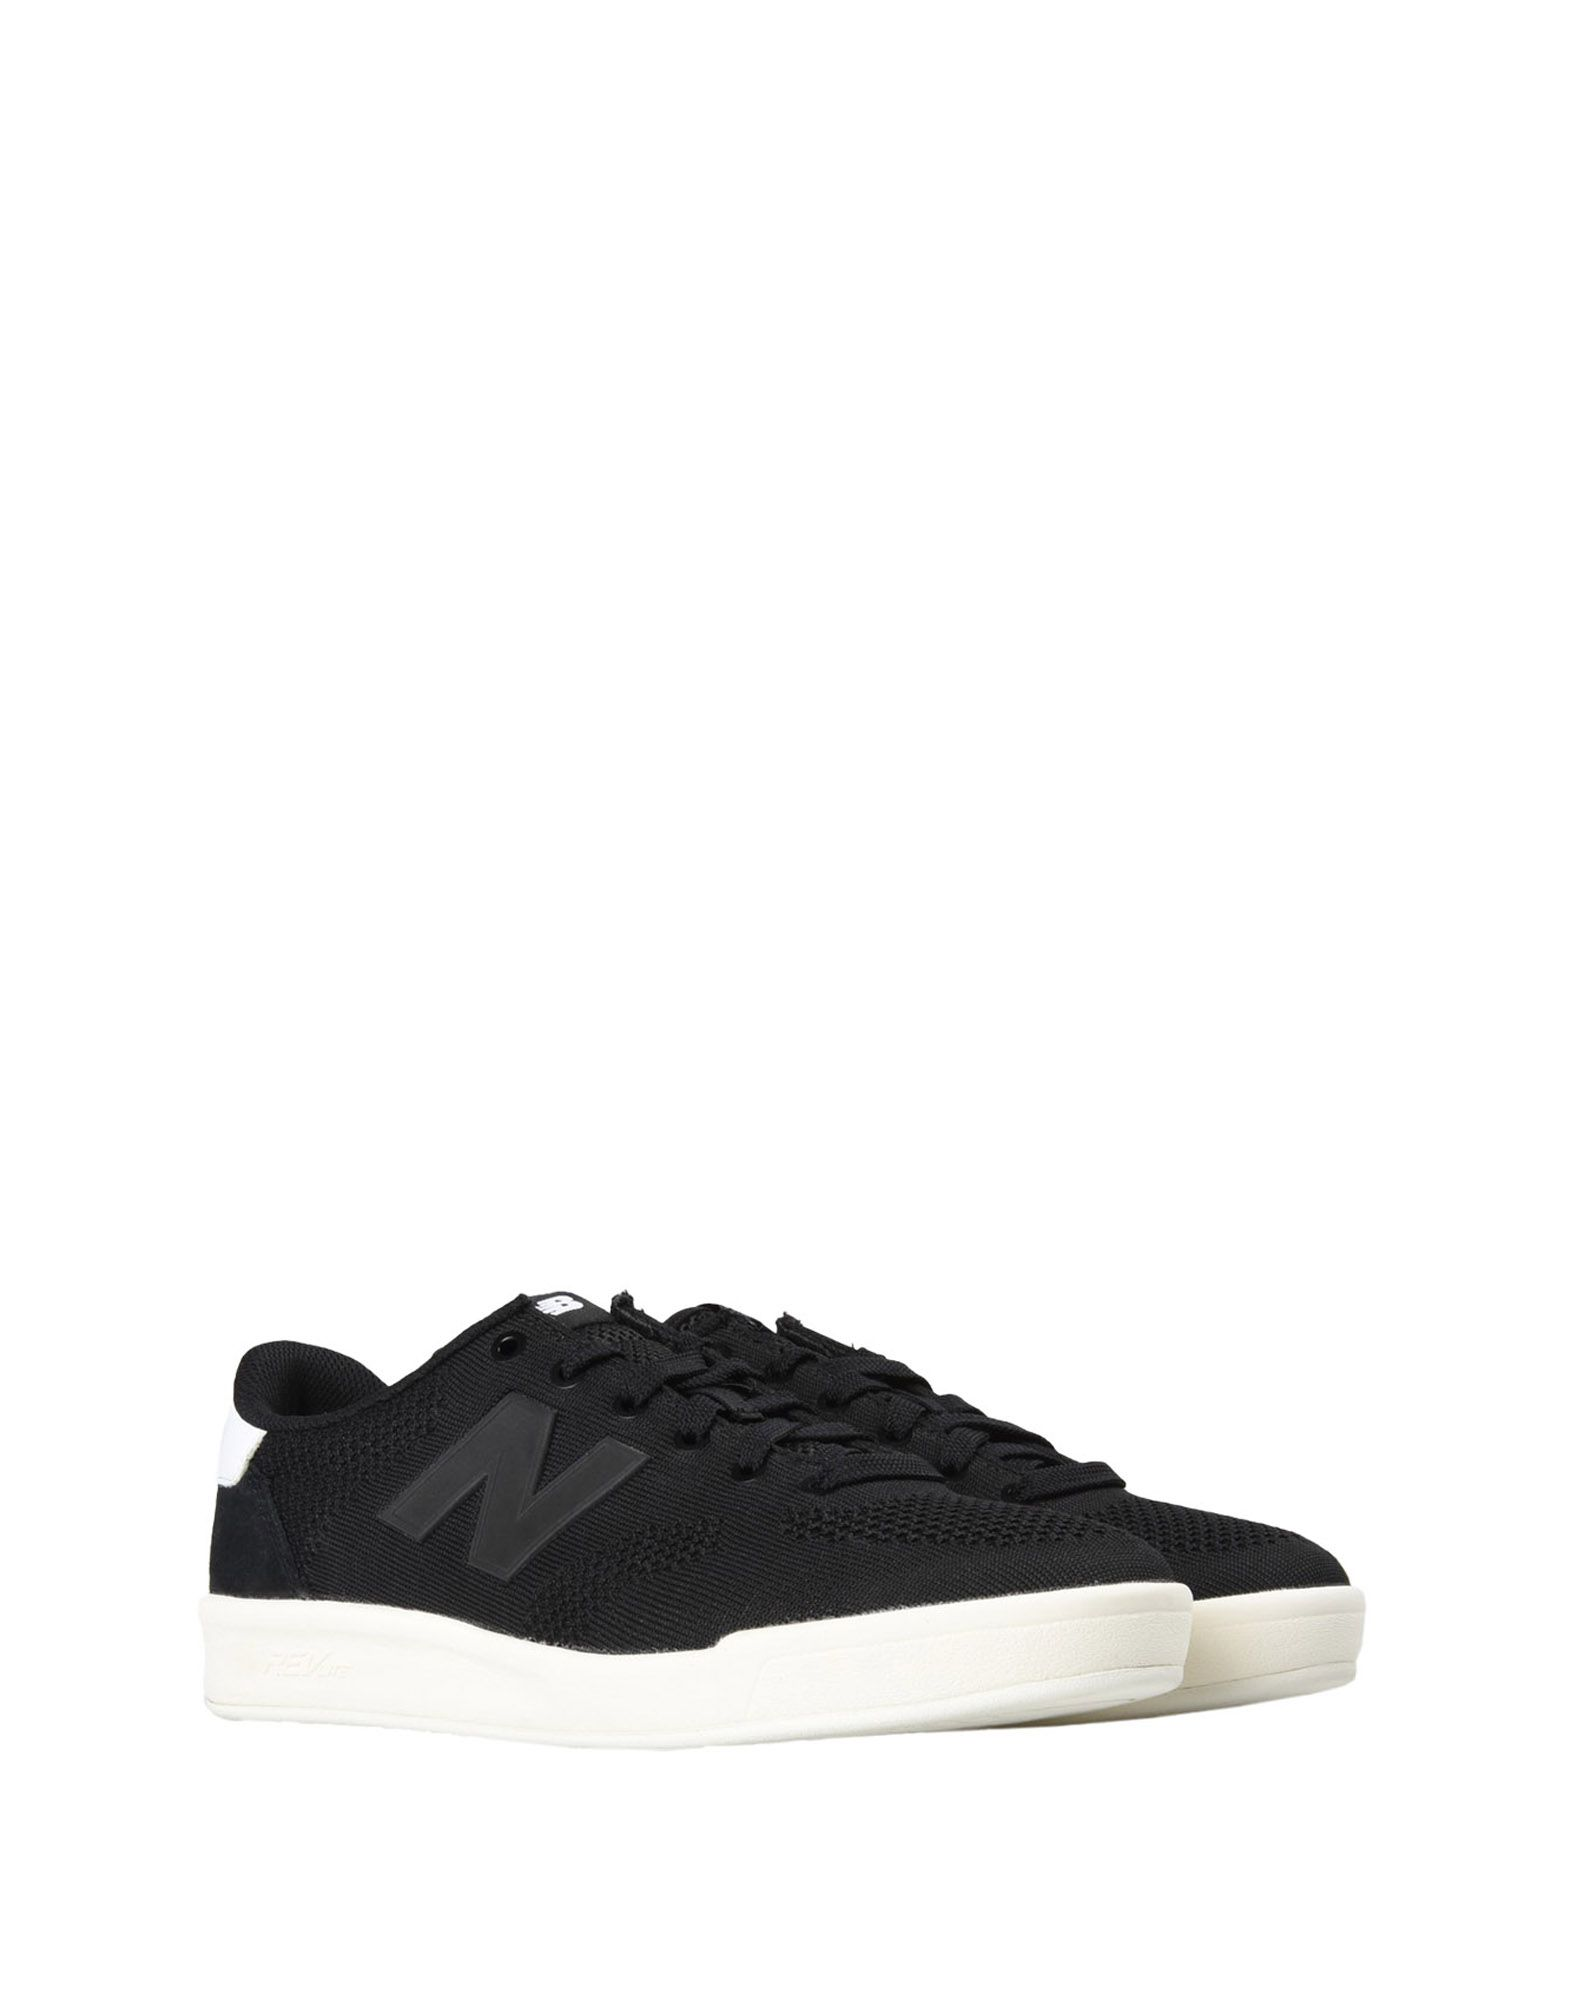 Sneakers New Balance 300 Hybrid - Homme - Sneakers New Balance sur